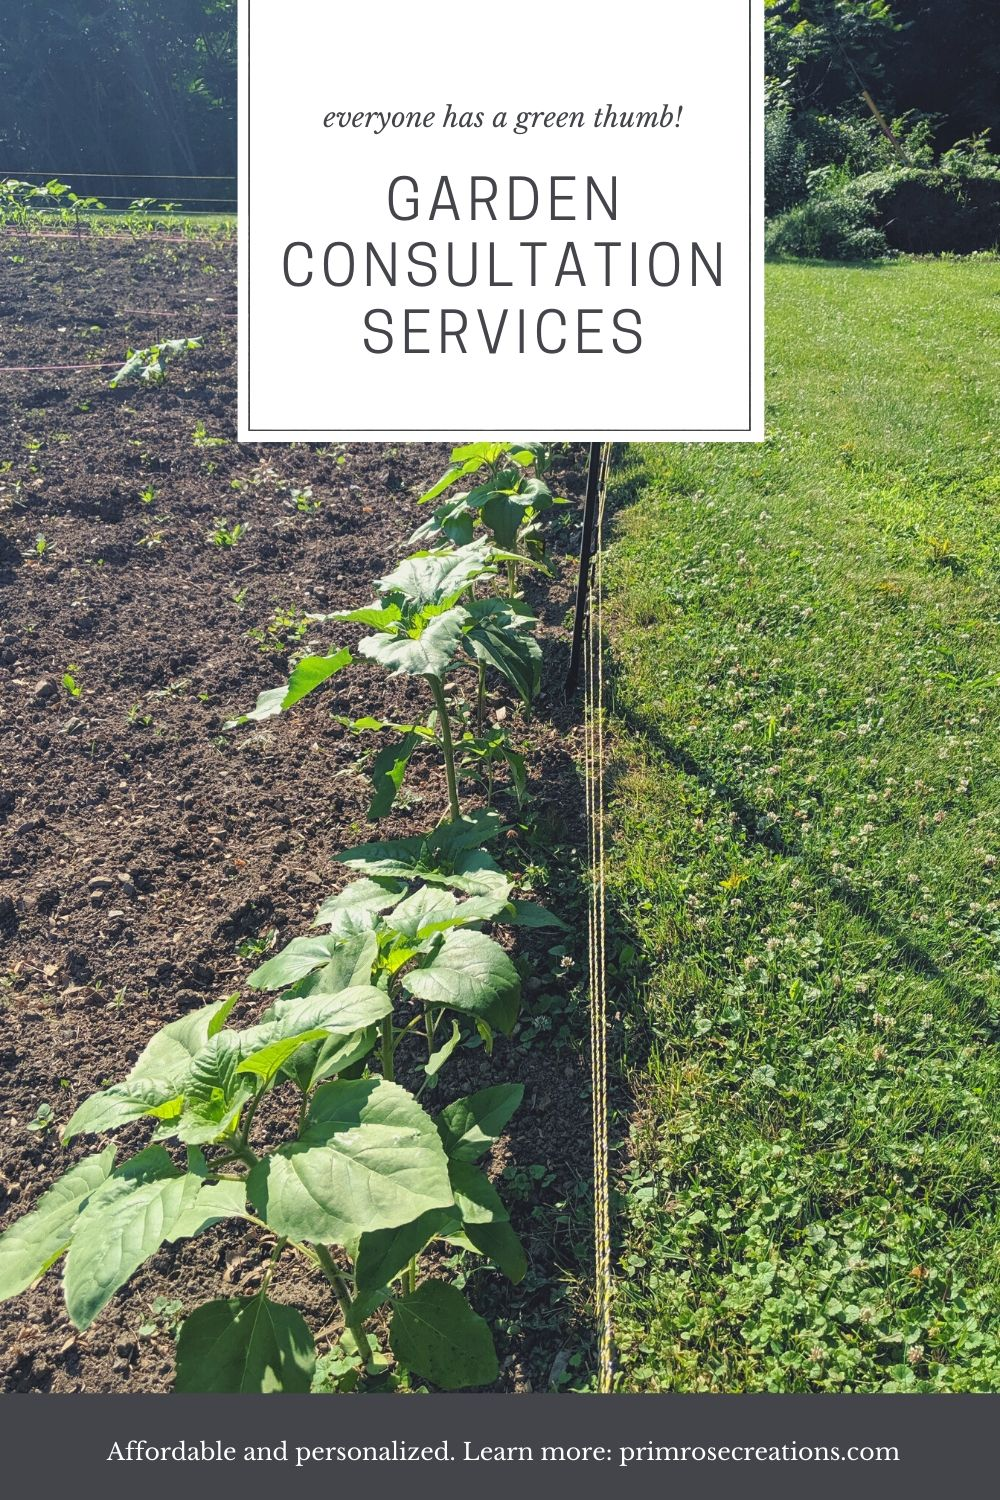 Garden consultations by Primrose Creations are conducted in the Amsterdam, NY area and include services such as garden placement and plant identification